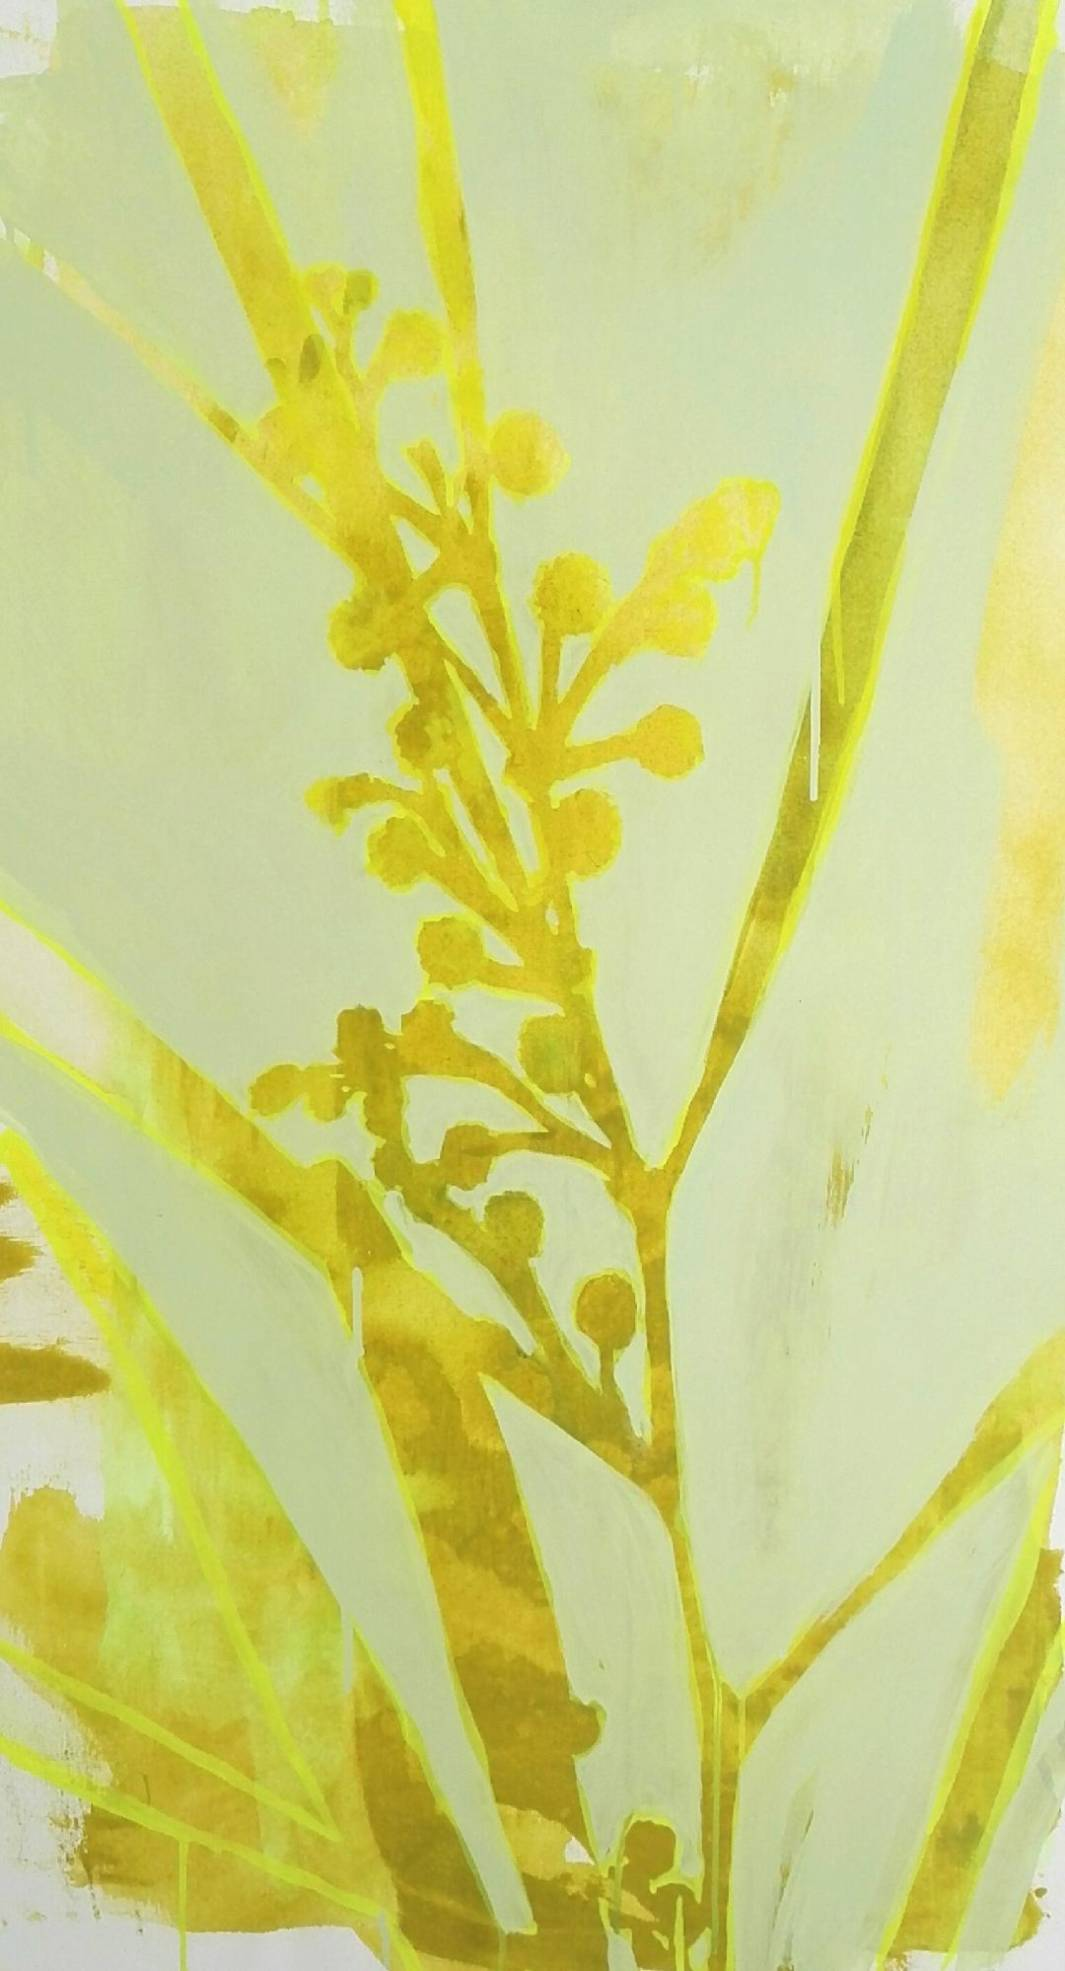 2018 Mimose 50x80